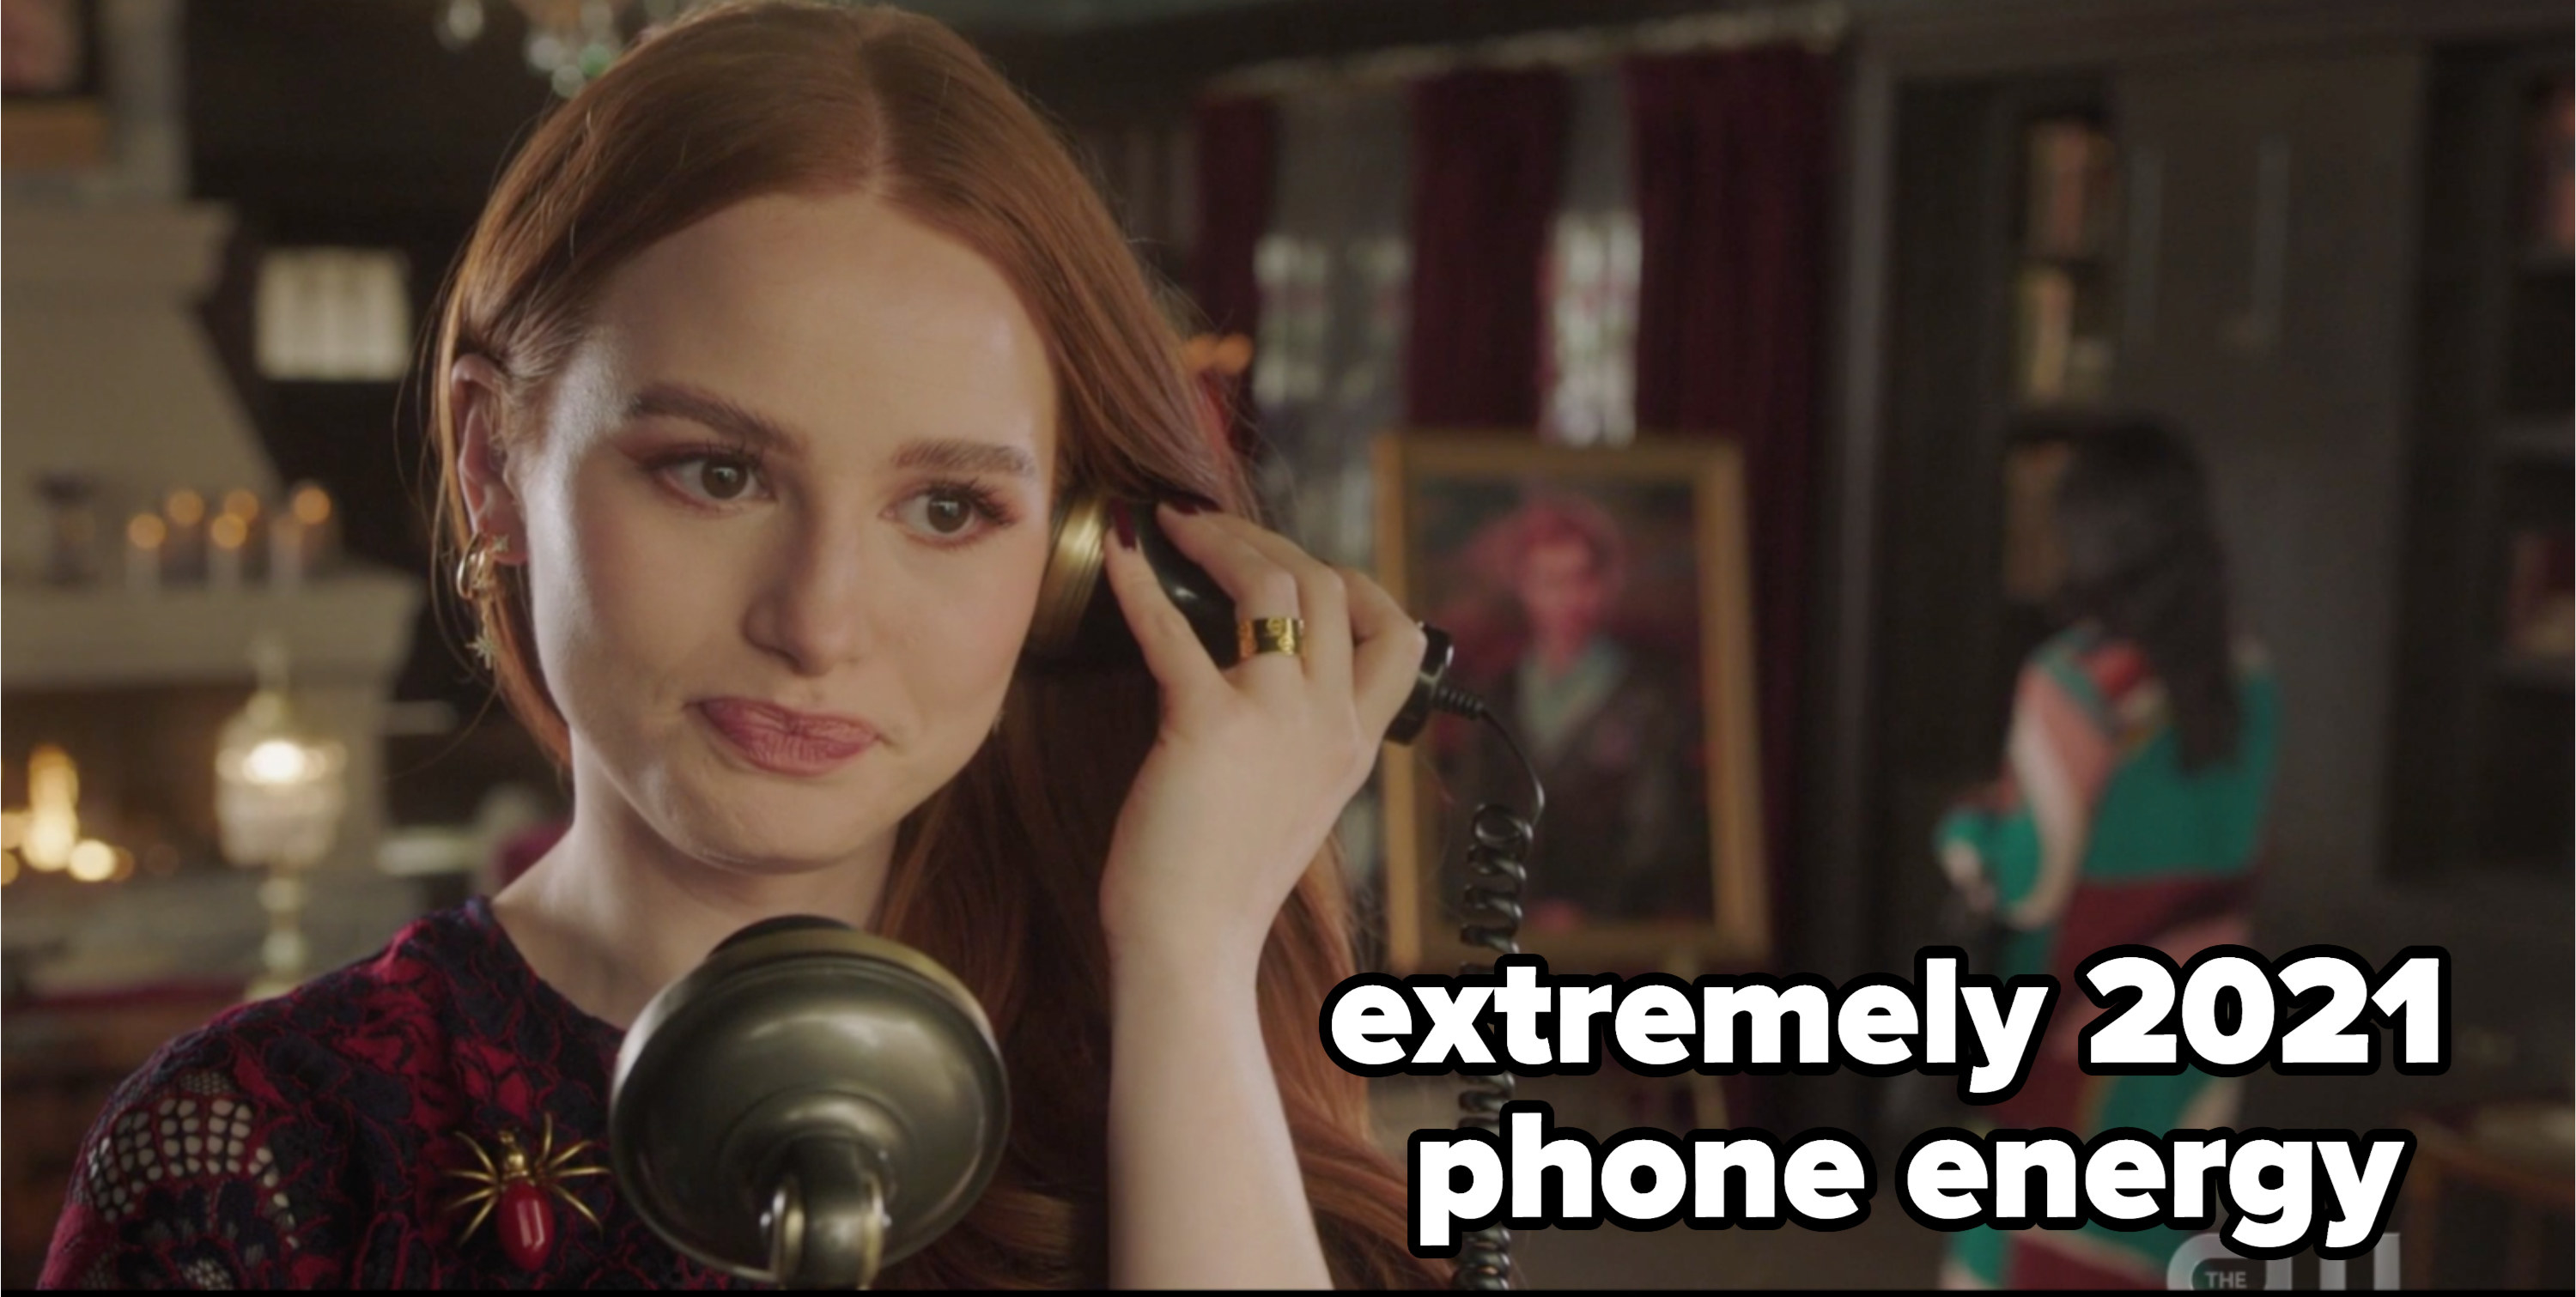 """Cheryl with a rotary phone with the caption """"extremely 2021 phone energy"""""""